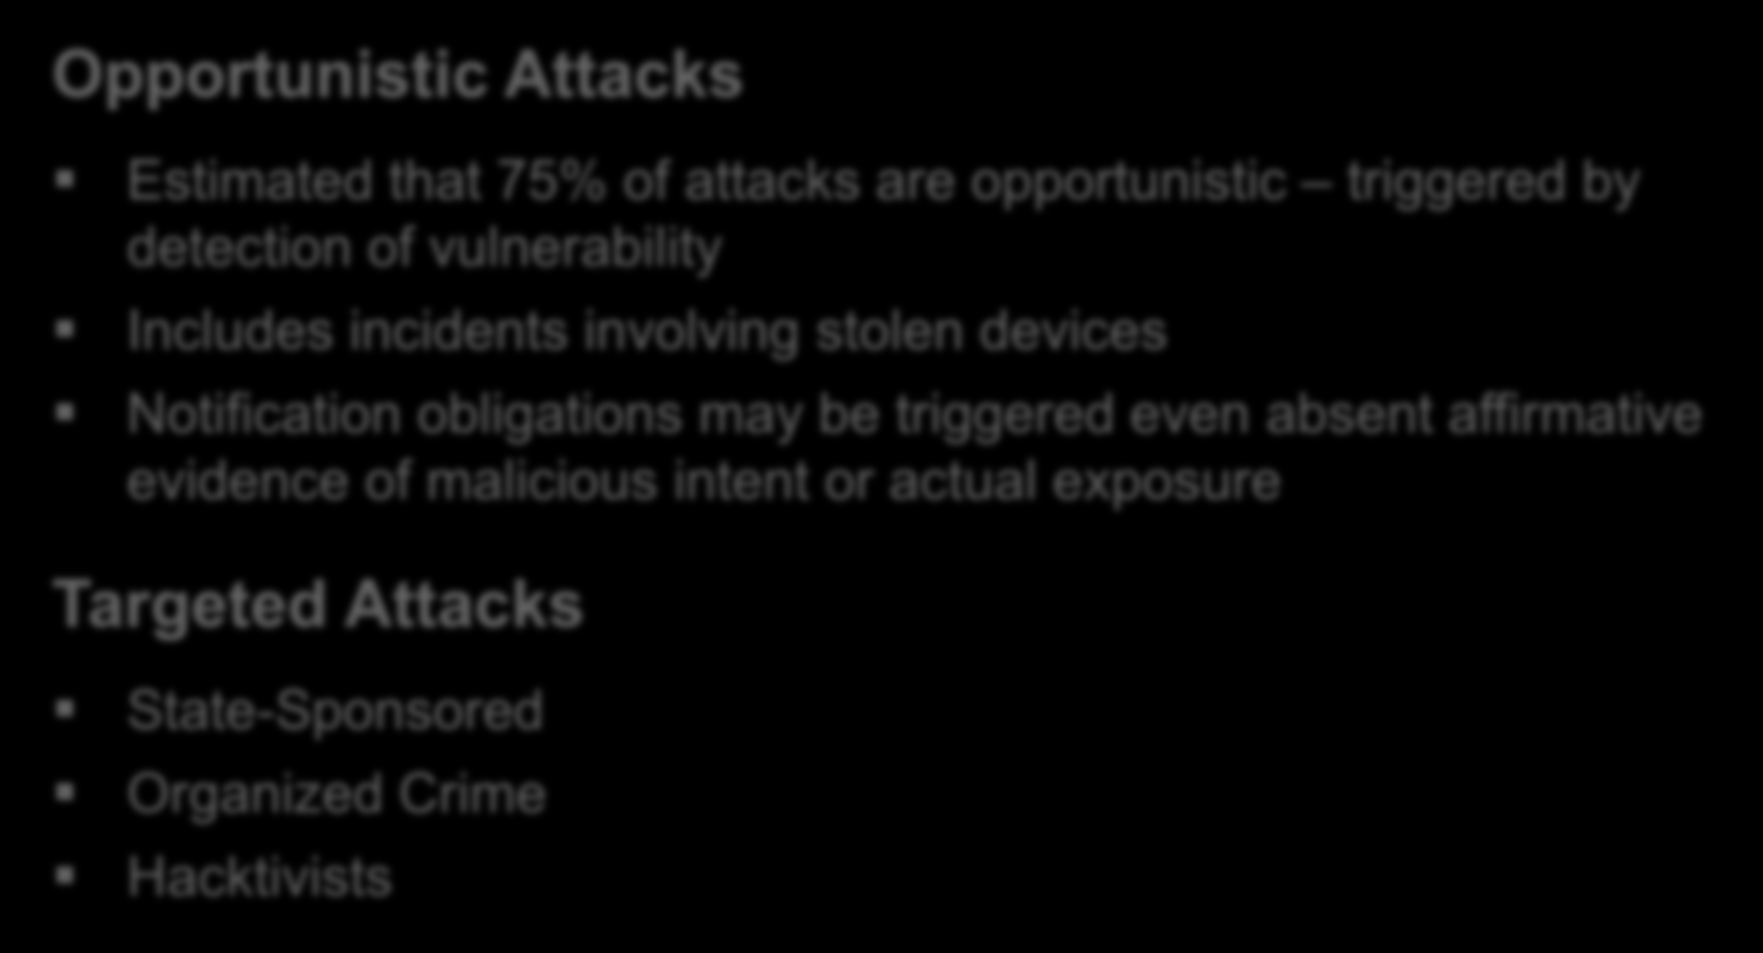 CYBER THREAT LANDSCAPE Hacking Attacks Opportunistic Attacks Estimated that 75% of attacks are opportunistic triggered by detection of vulnerability Includes incidents involving stolen